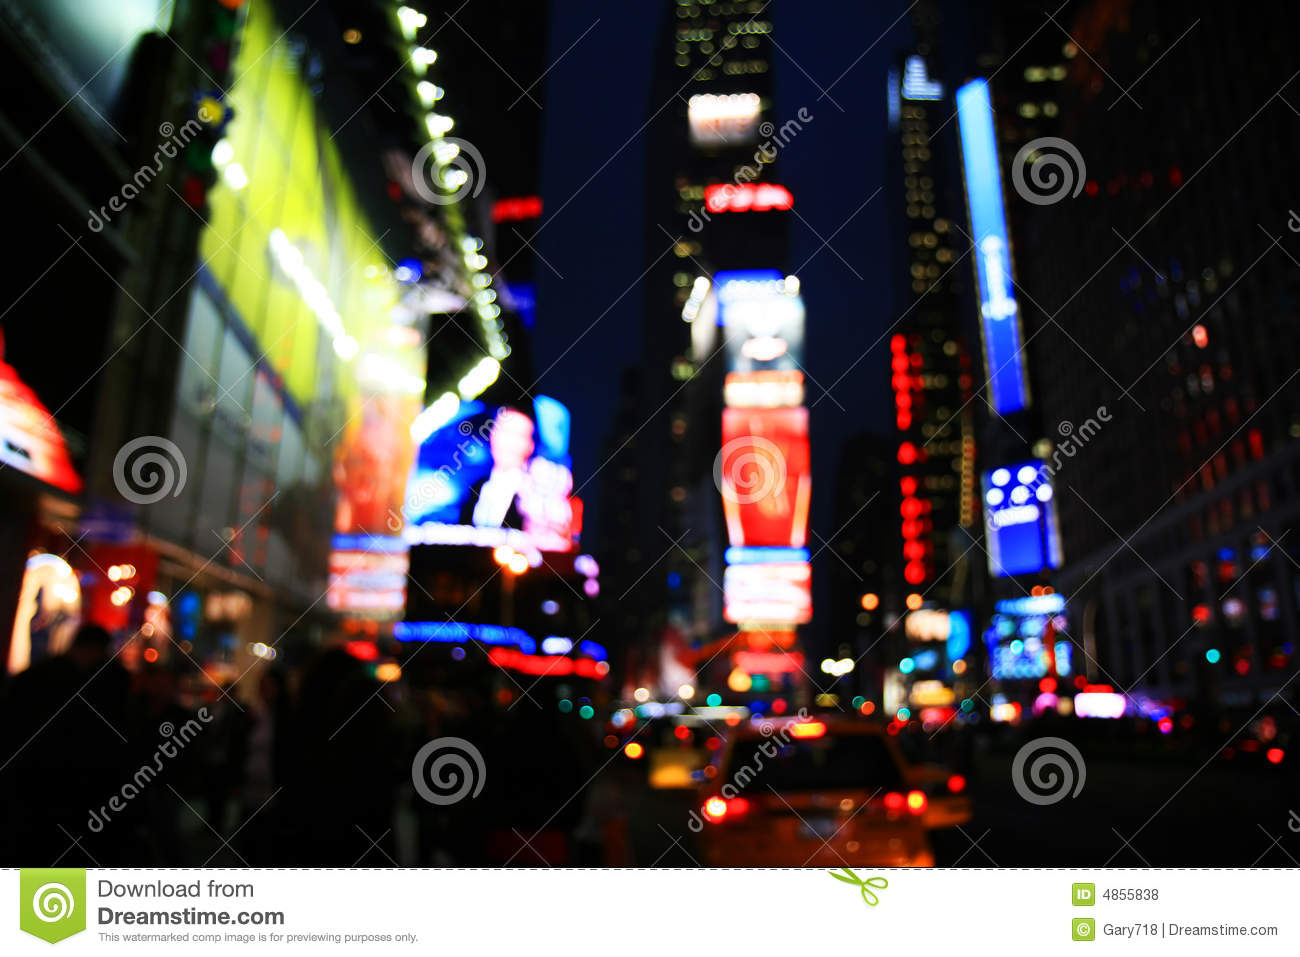 The Times Square -special effect